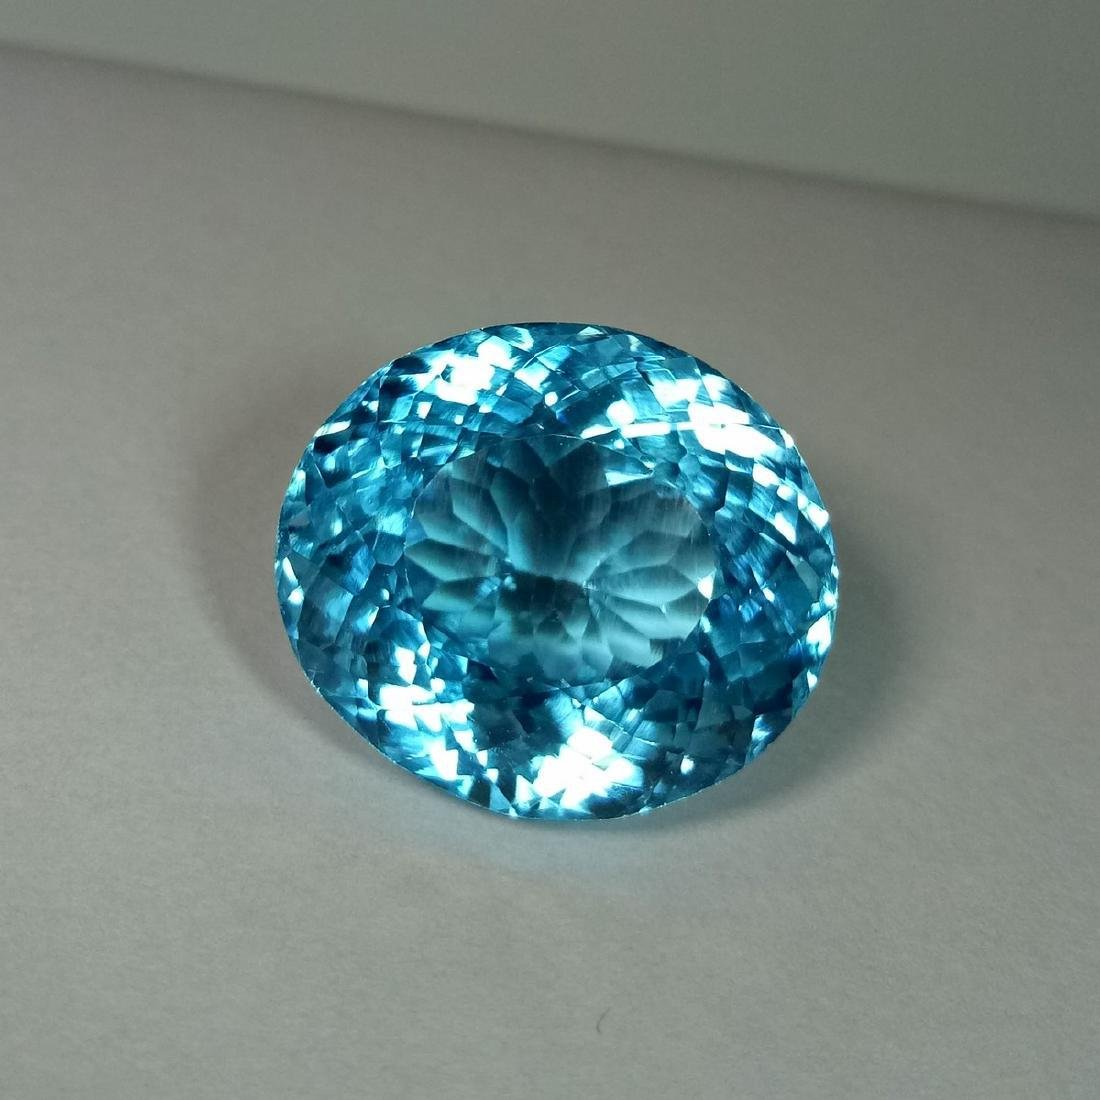 39.39 Carat Loose Swiss Blue Topaz